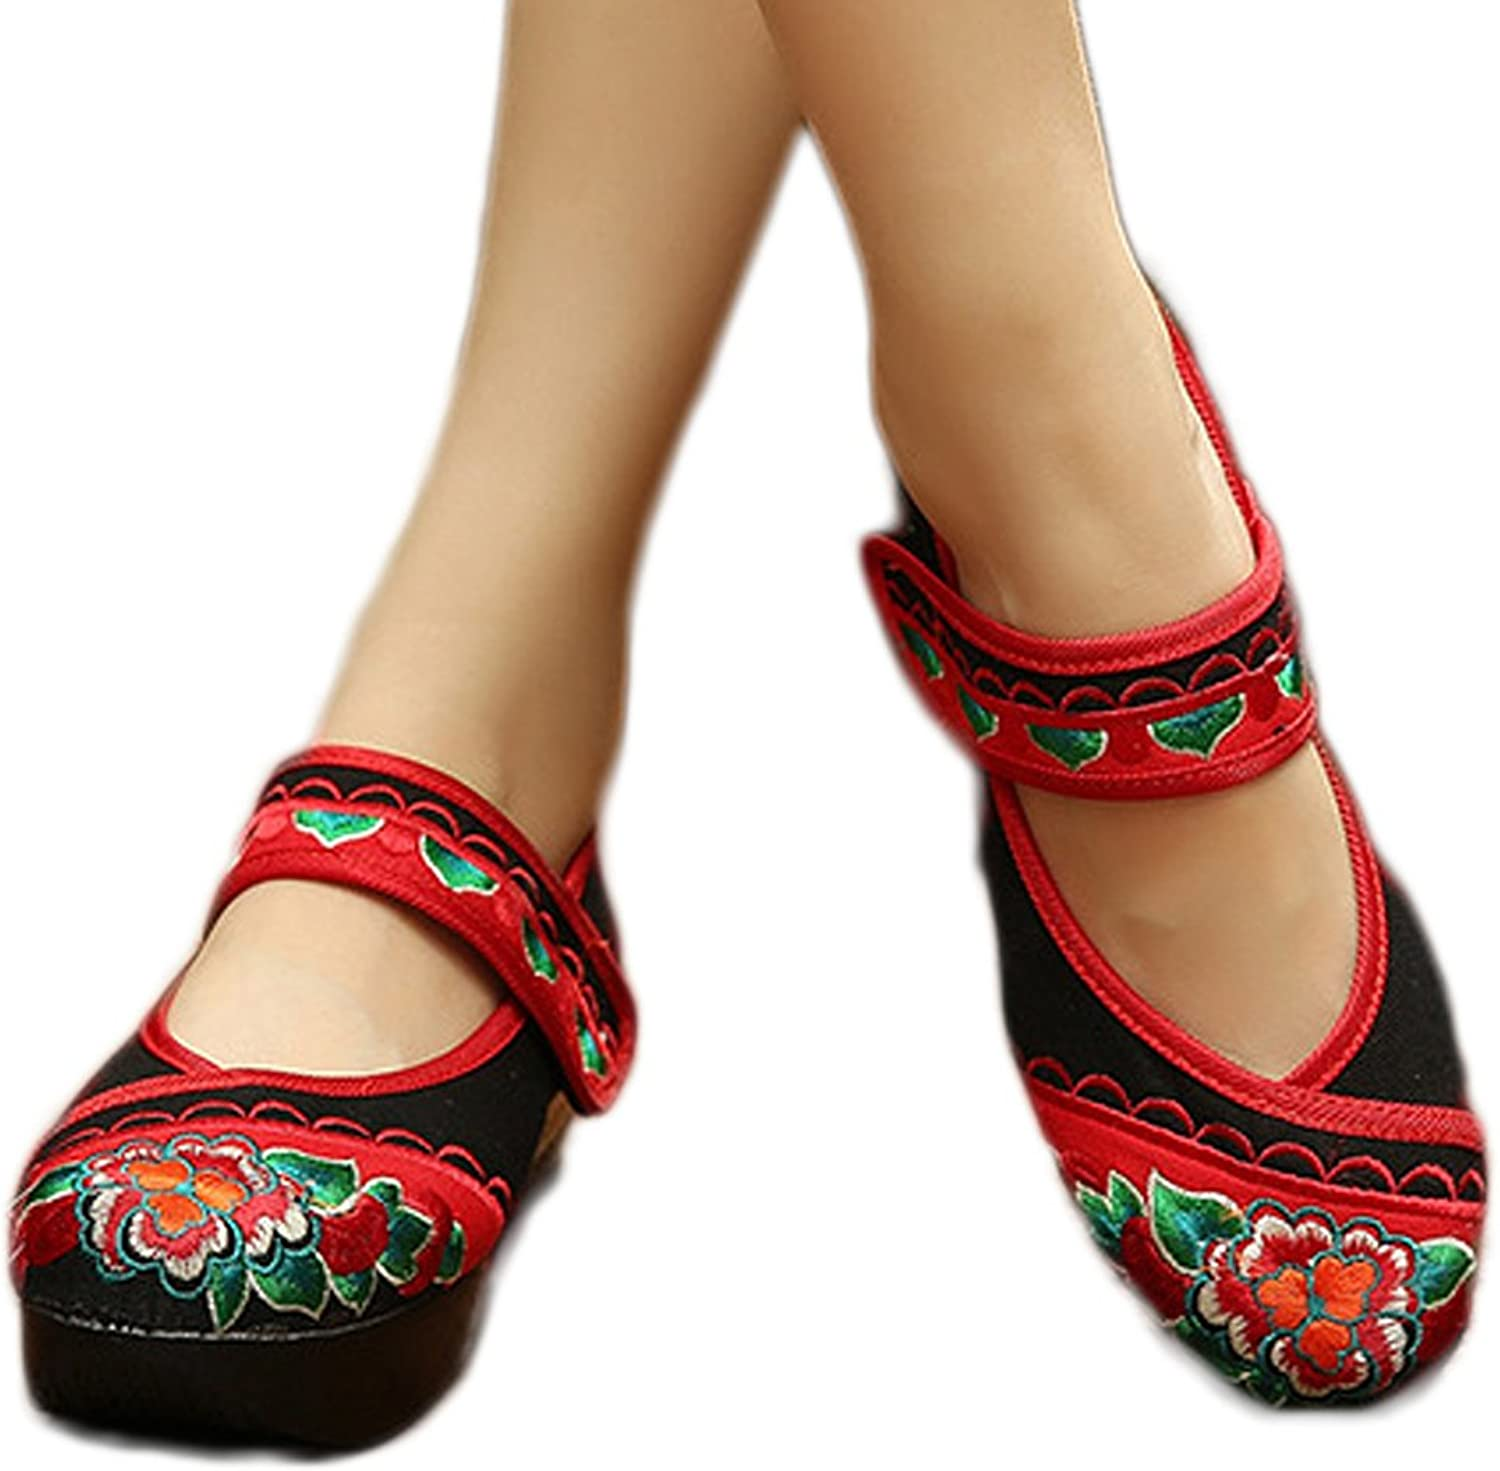 AvaCostume Womens Flower Embroidery Ultralight Platform Mary Jane shoes